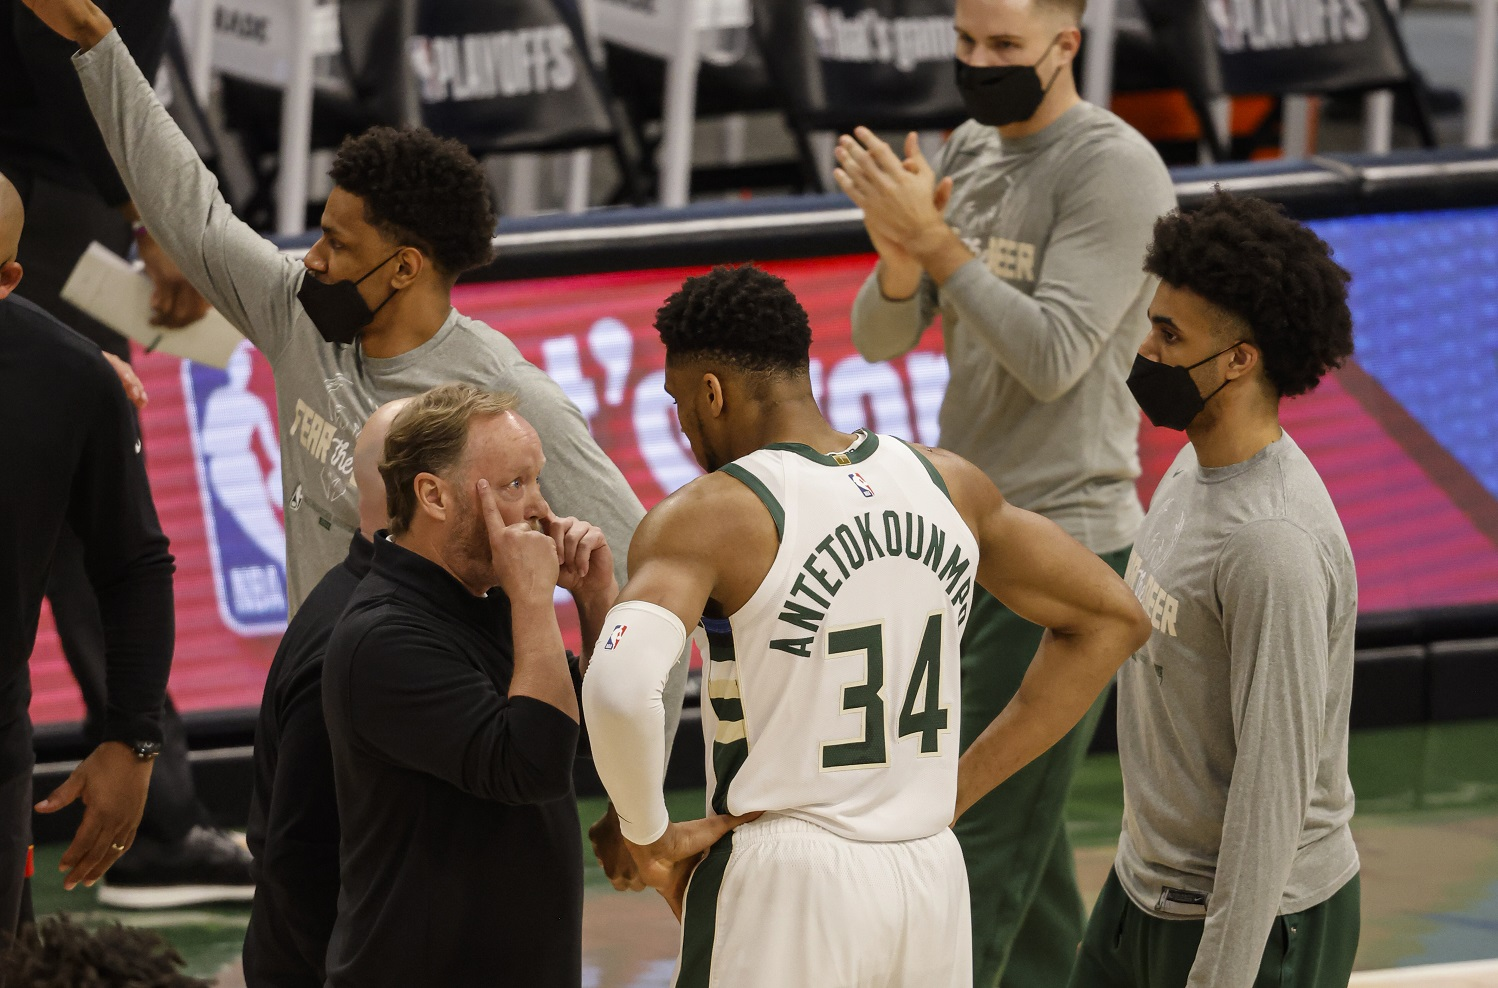 As series heads to Miami, Bucks-Heat starts to look personal — Holiday, home court unsung heroes, so far